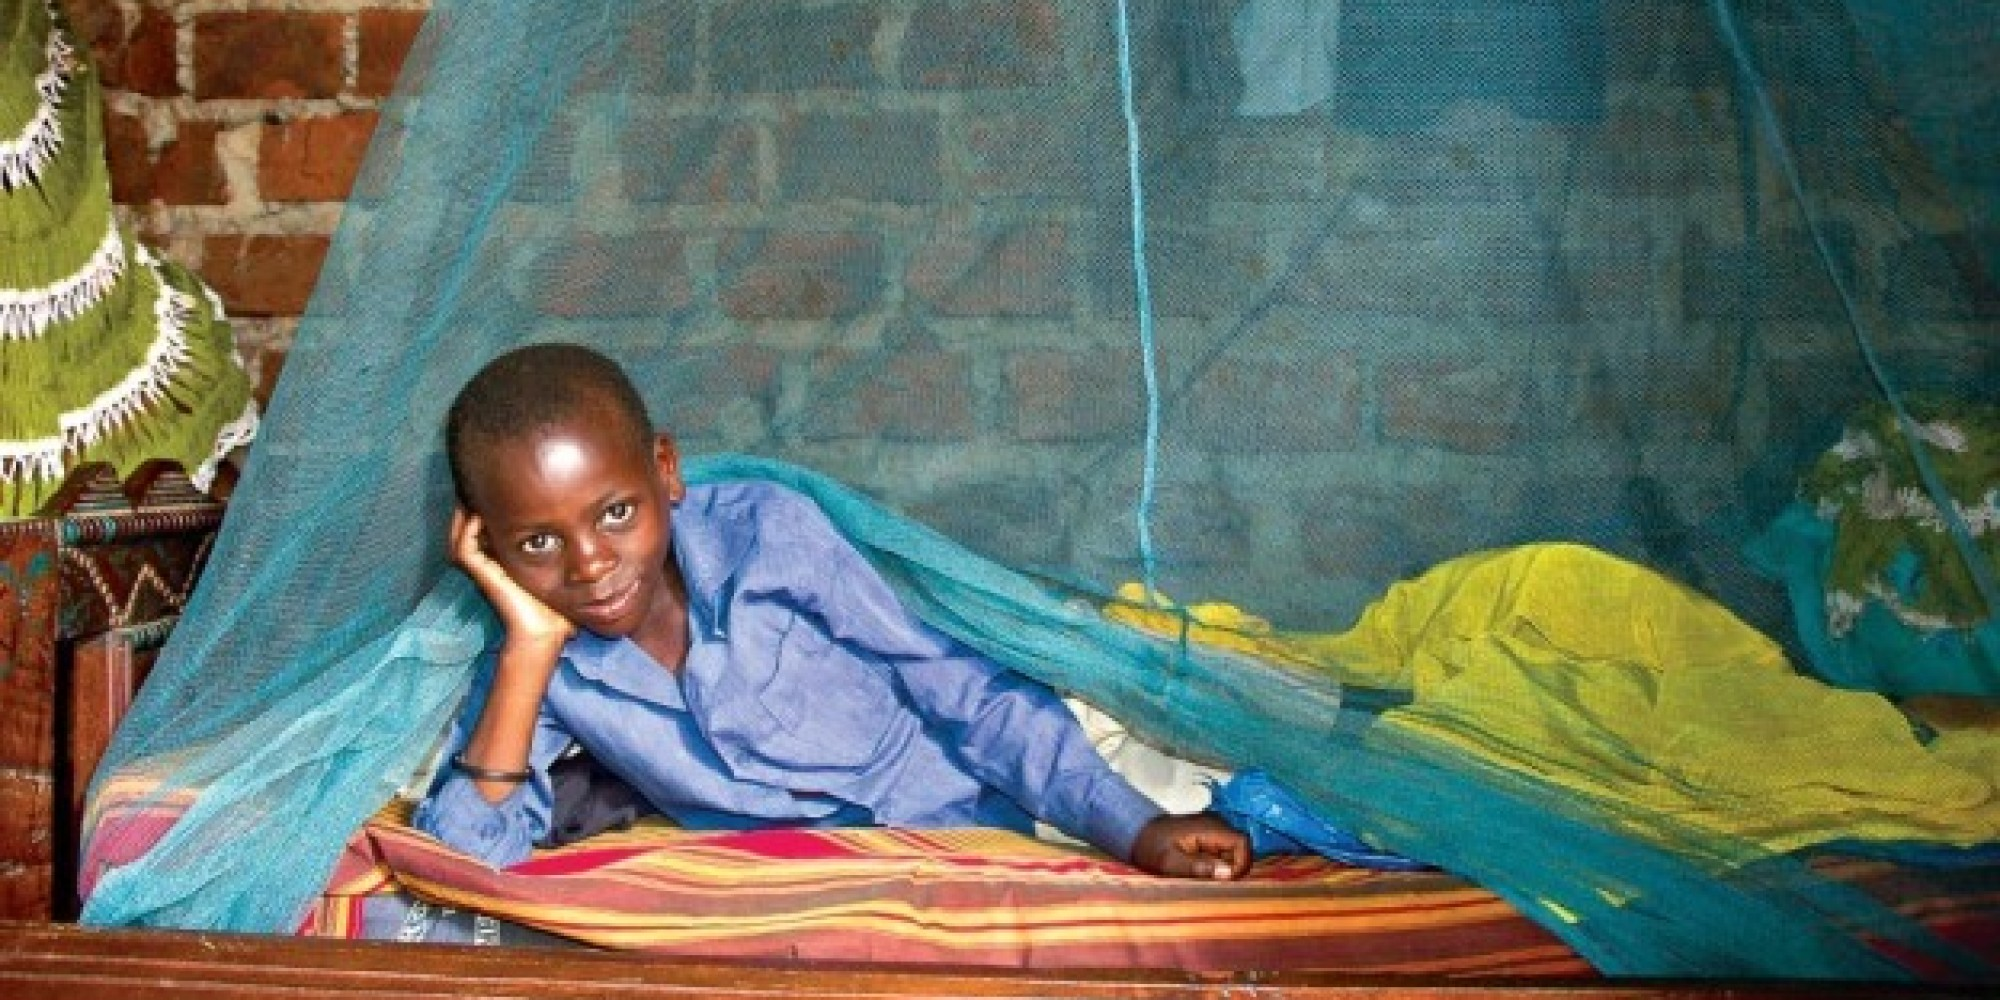 Theafricareport.com : Ghana, Kenya and Malawi to pilot GSK Malaria Vaccine From 2018